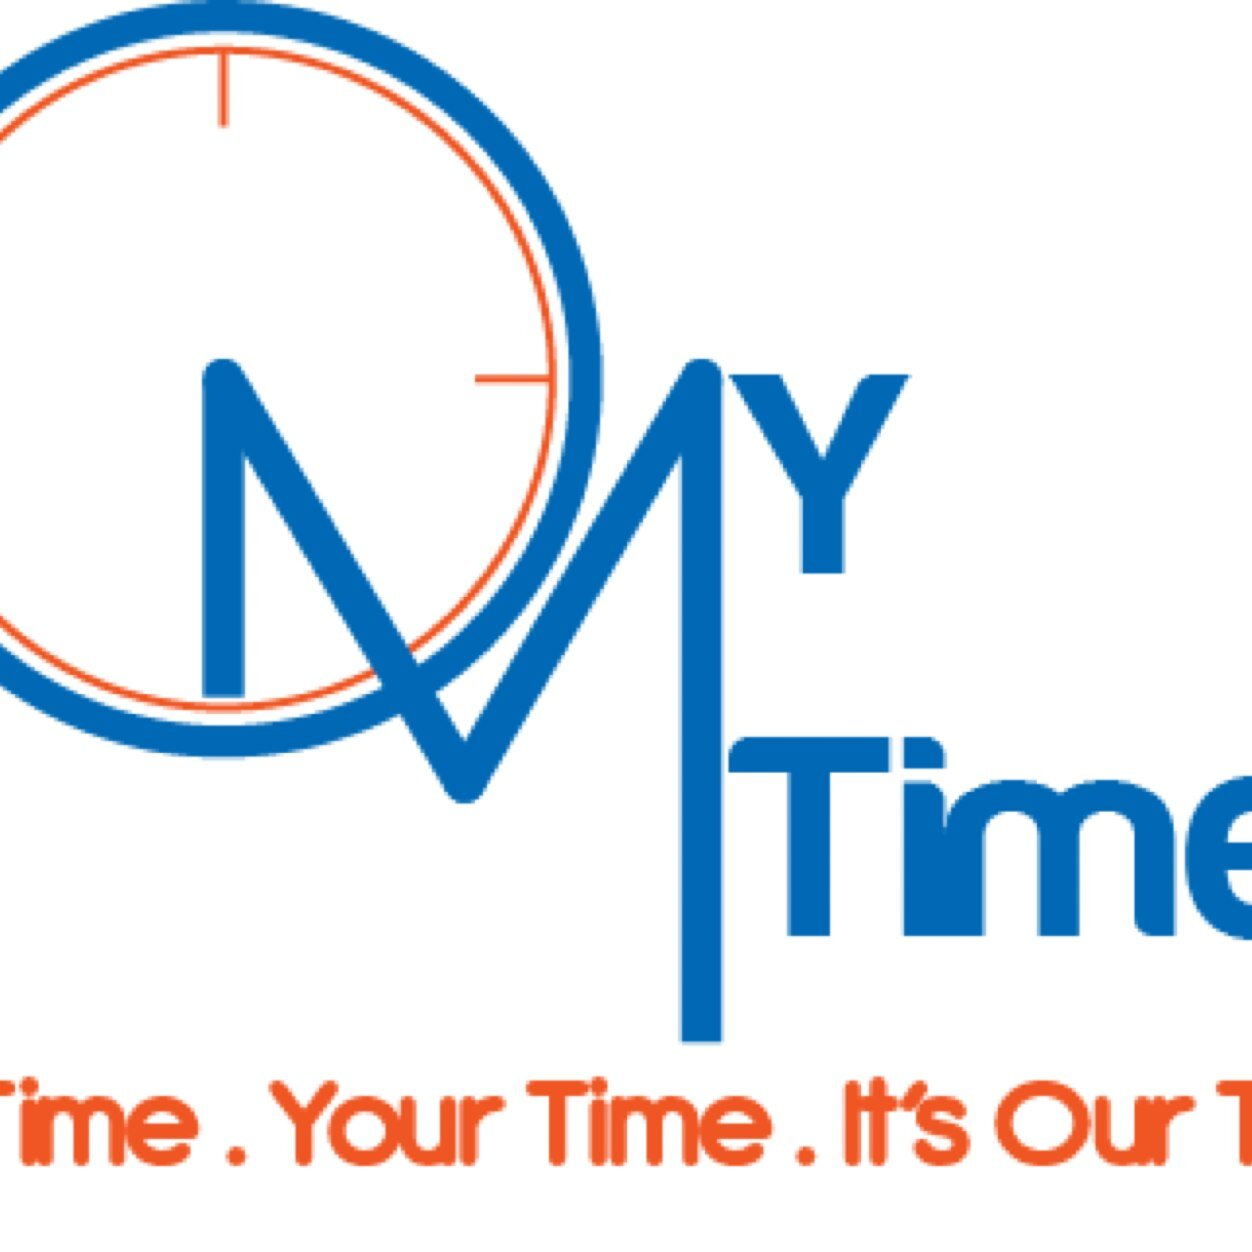 What Time Is It On What Tv: My Time (@Mytime_tv)